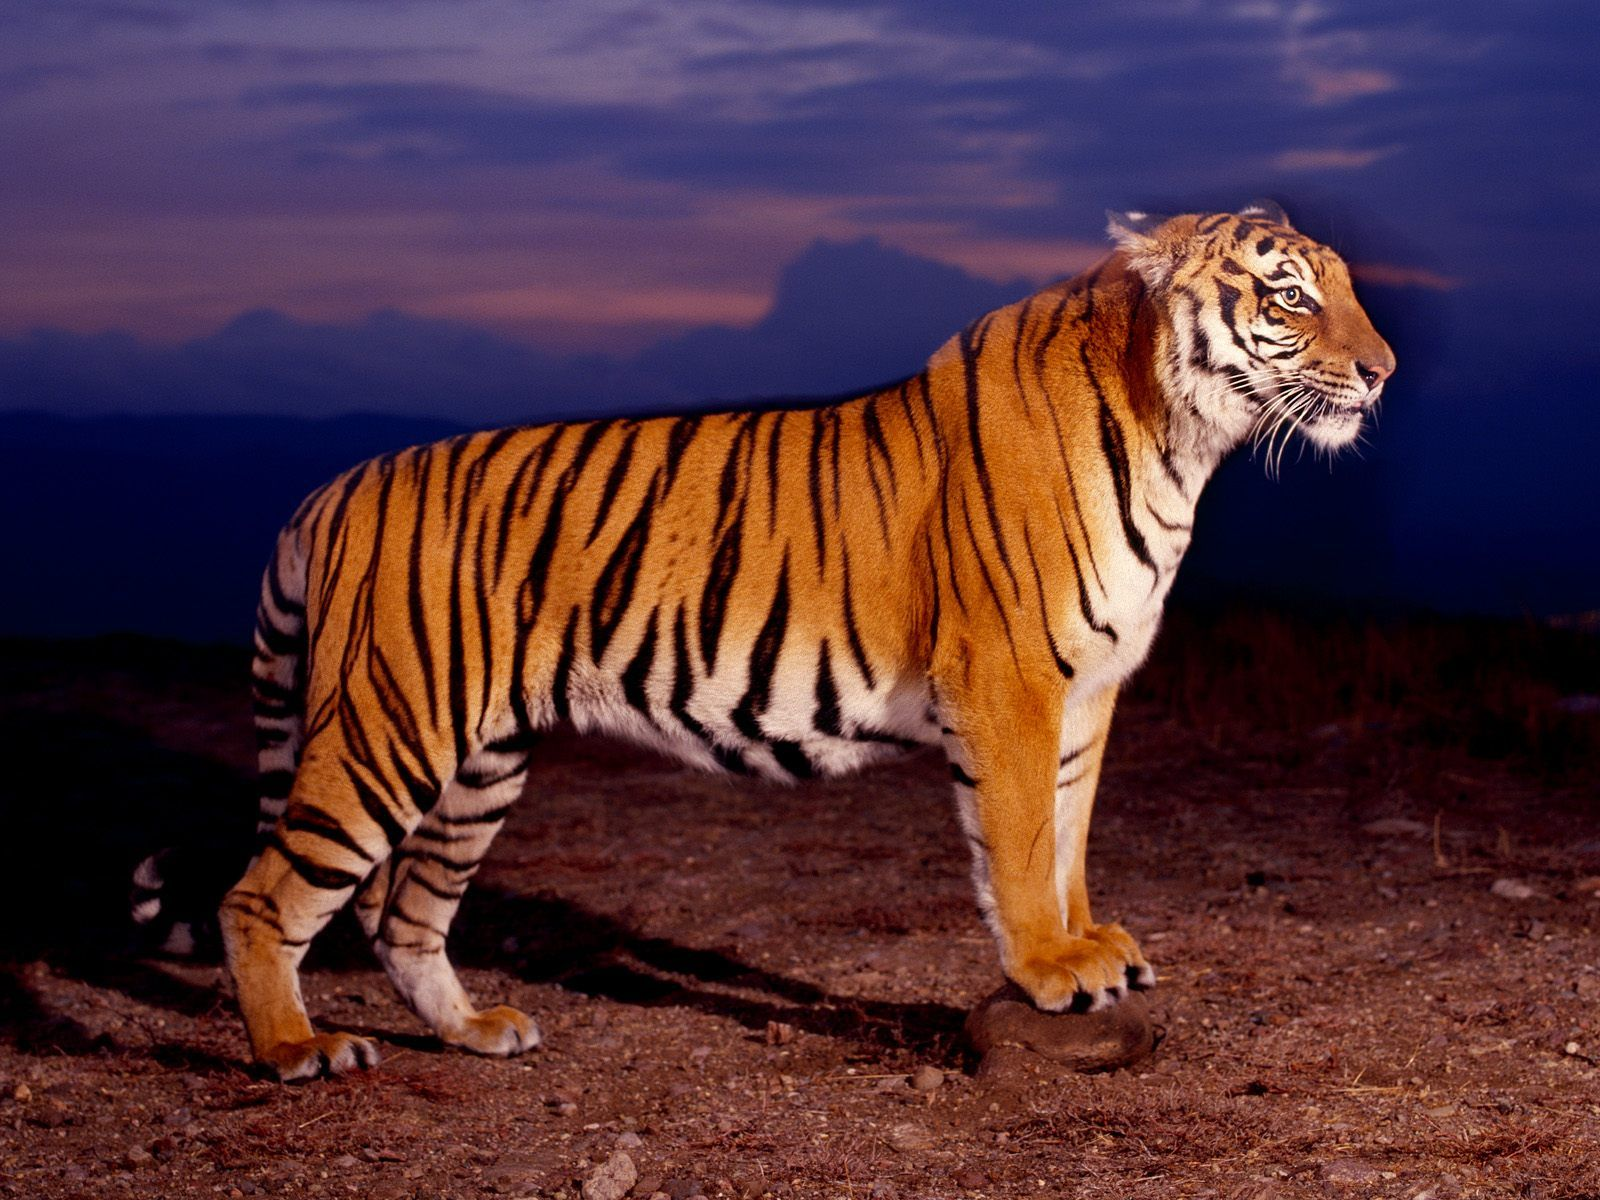 Tiger standing and ready to attack wallpaper Tigers